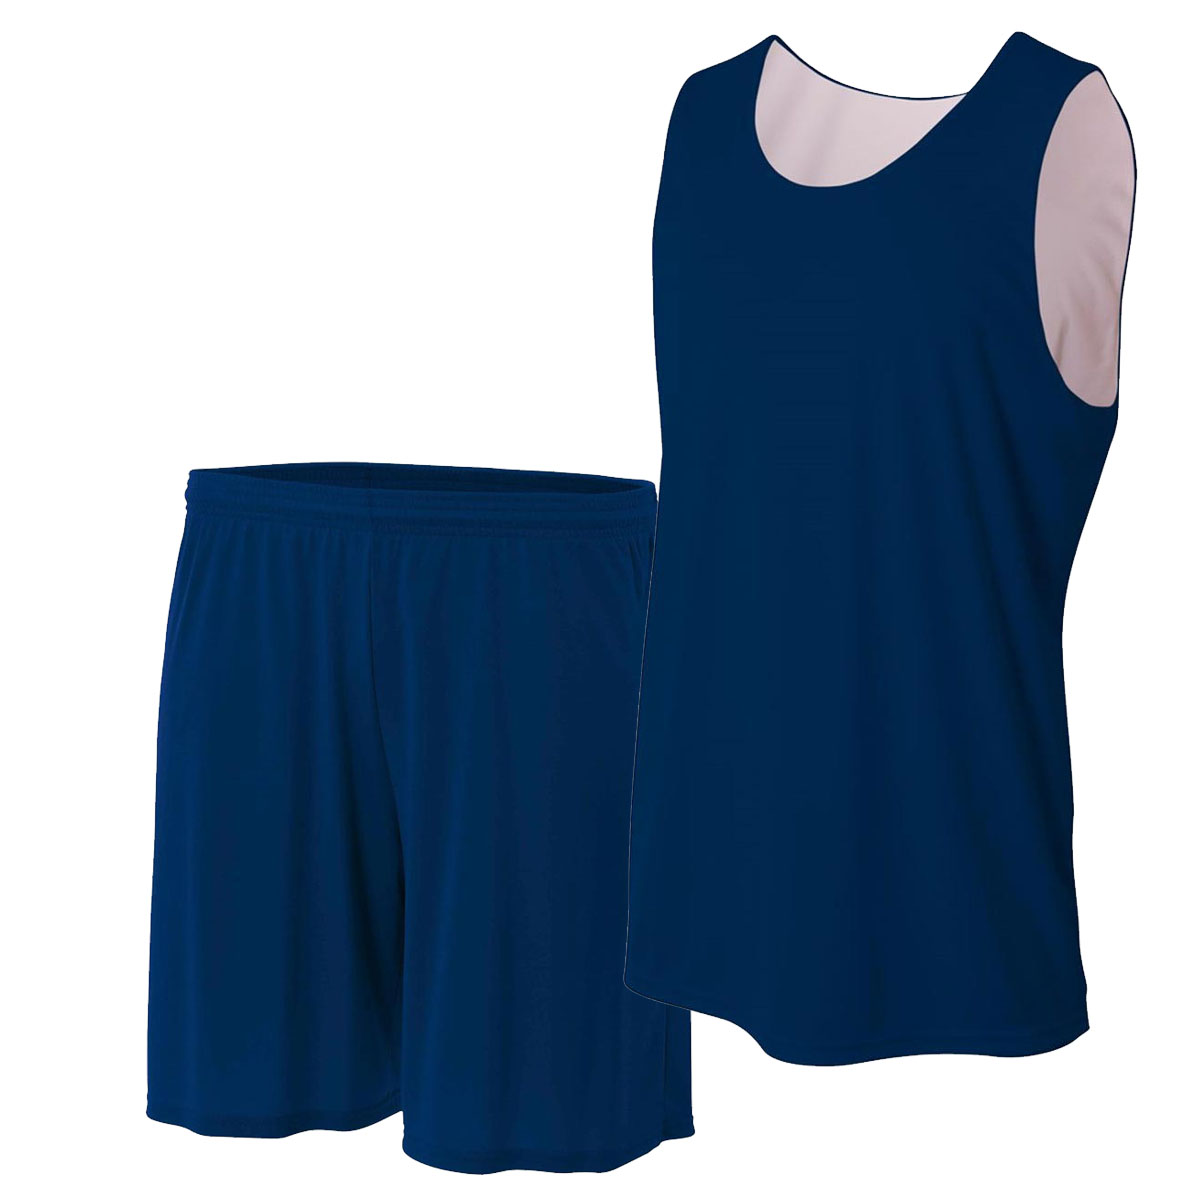 Reversible Basketball Uniforms Manufacturers in Jalandhar in Argentina